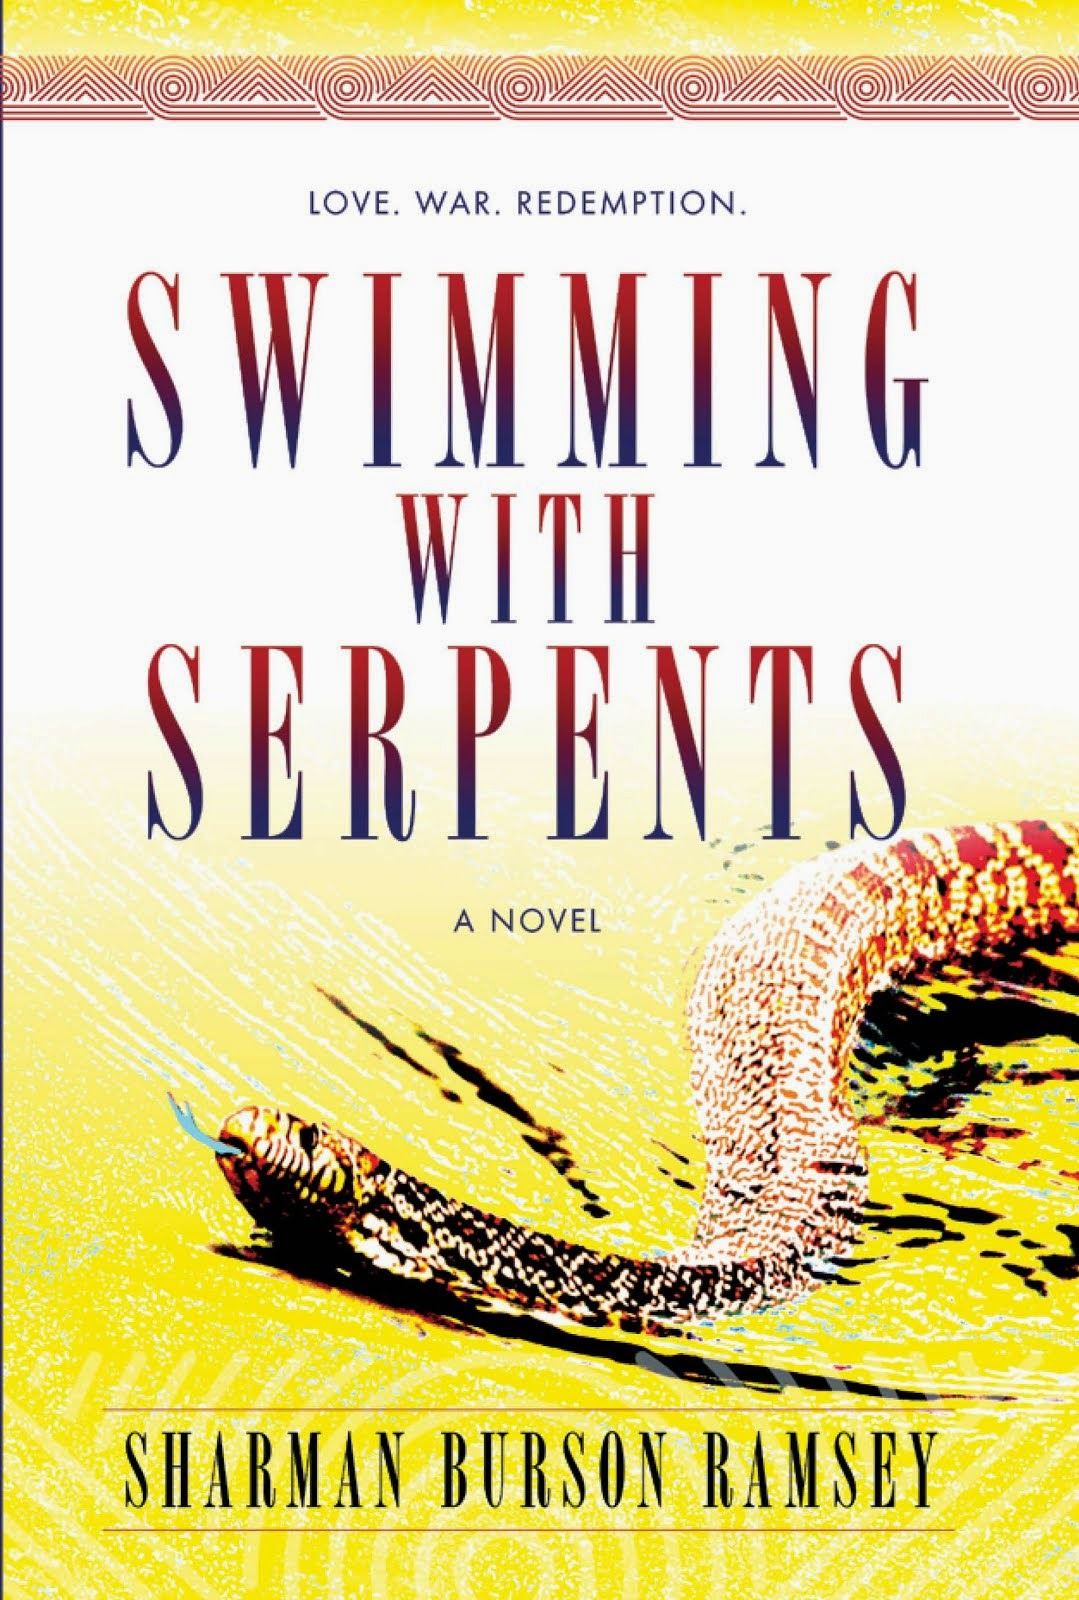 Swimming with Serpents